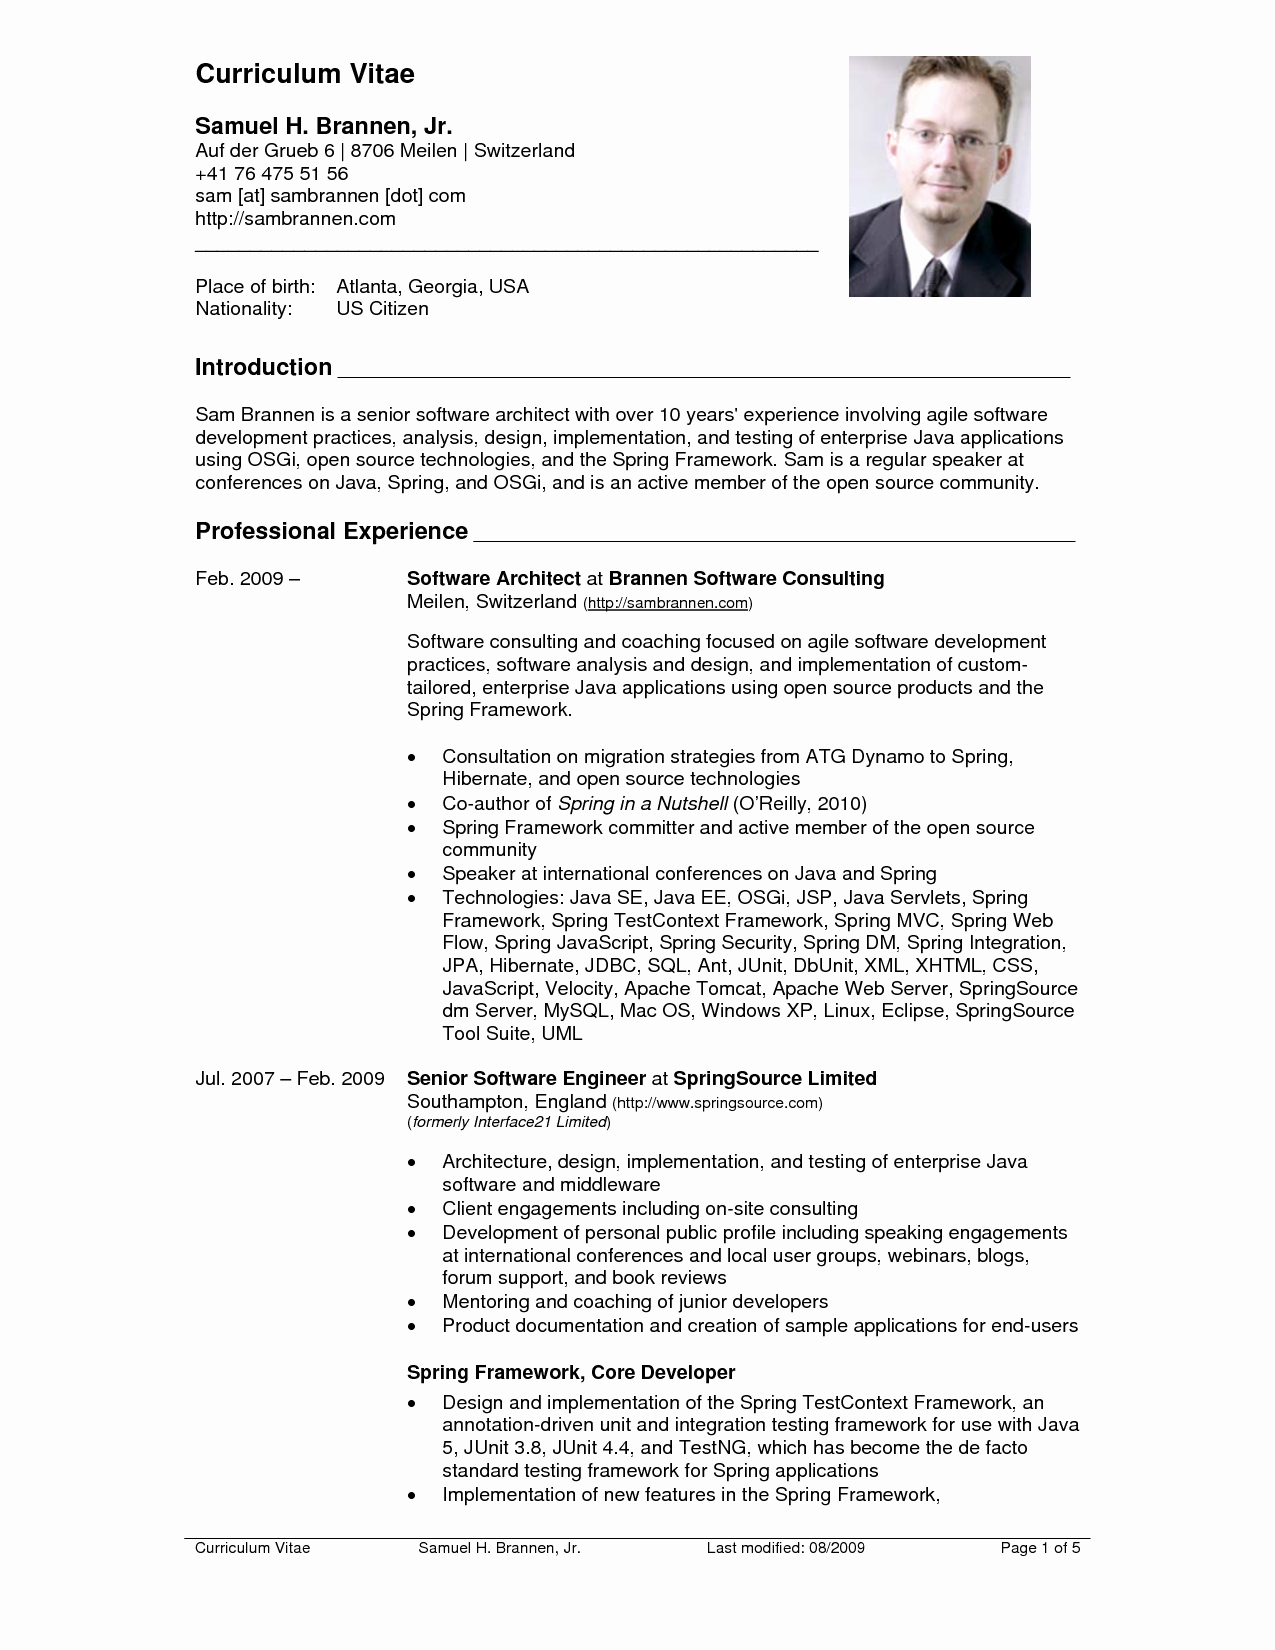 Curriculum Vitae Samples Best Of Resume Cv